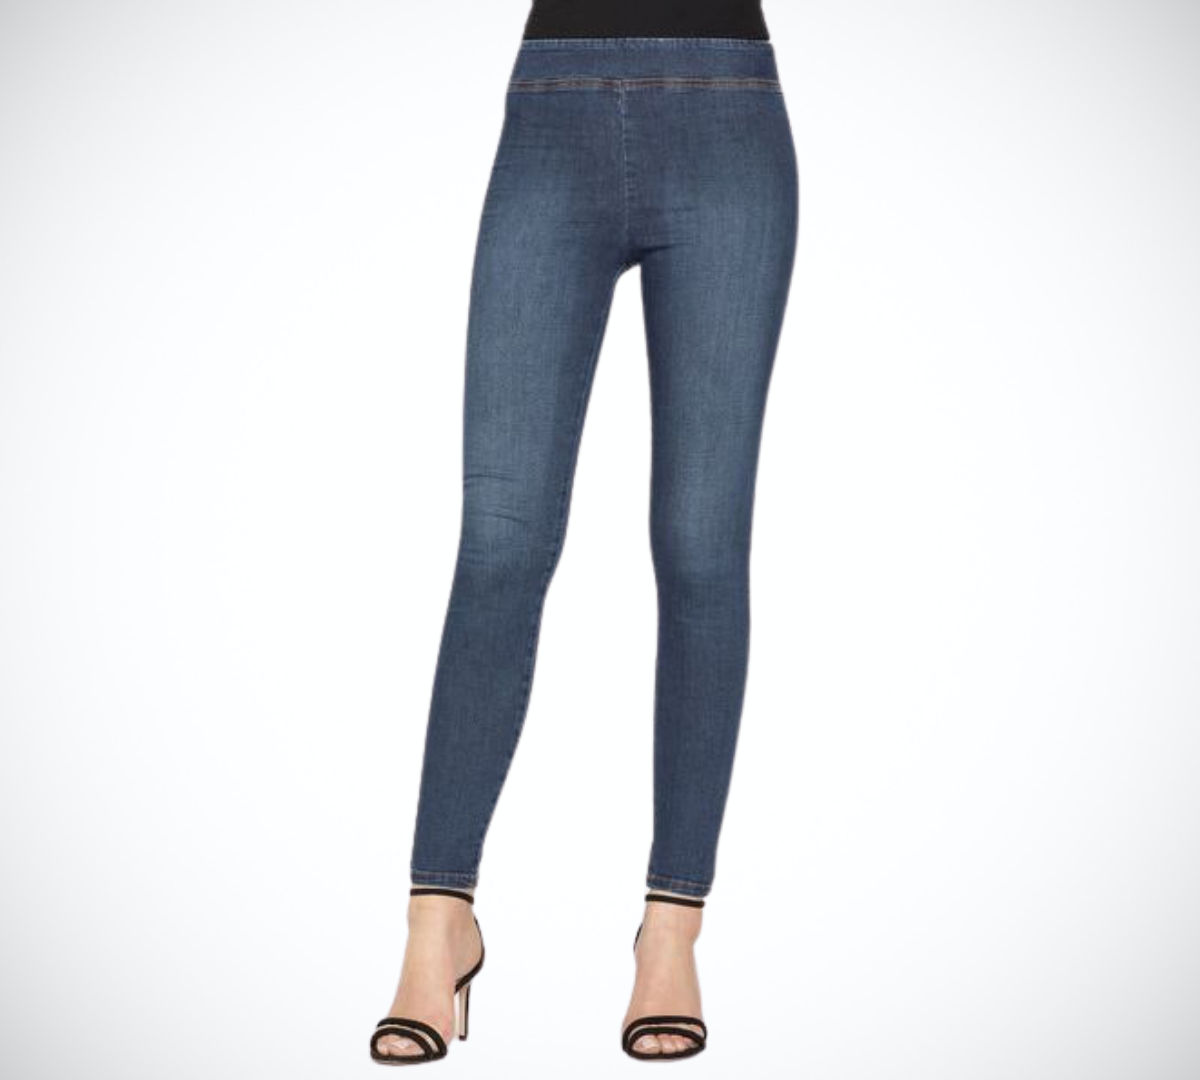 Legg-jeans super stretch mod. 787L Carrera